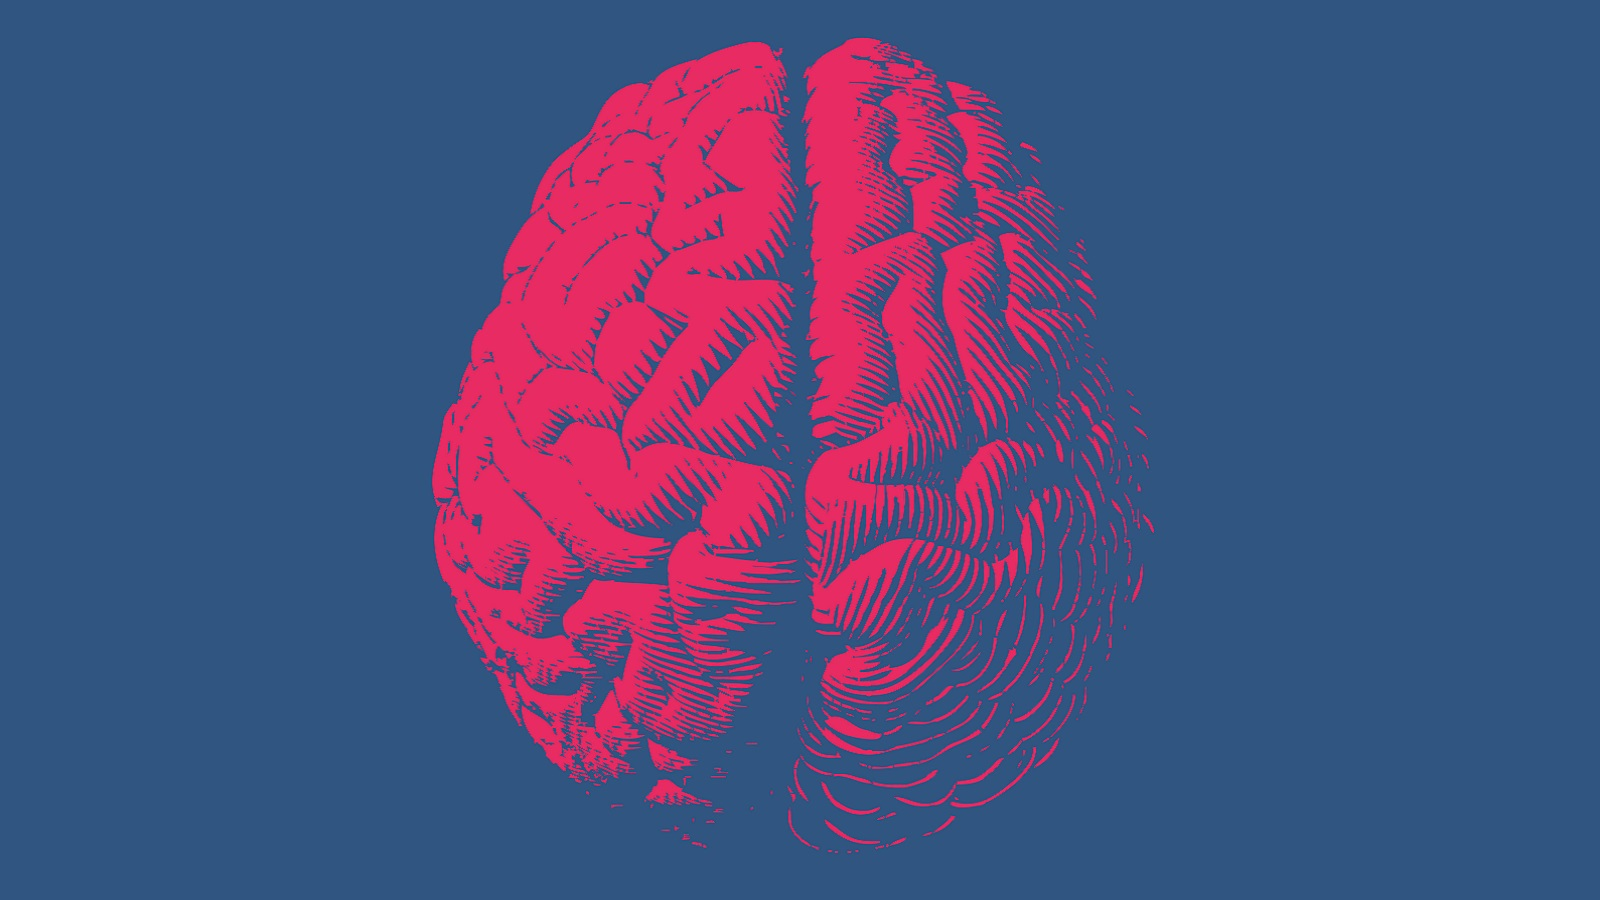 A new glutamate-sensing material could lead to new insights into the workings of the human brain. (Image by Shutterstock / Jolygon.)